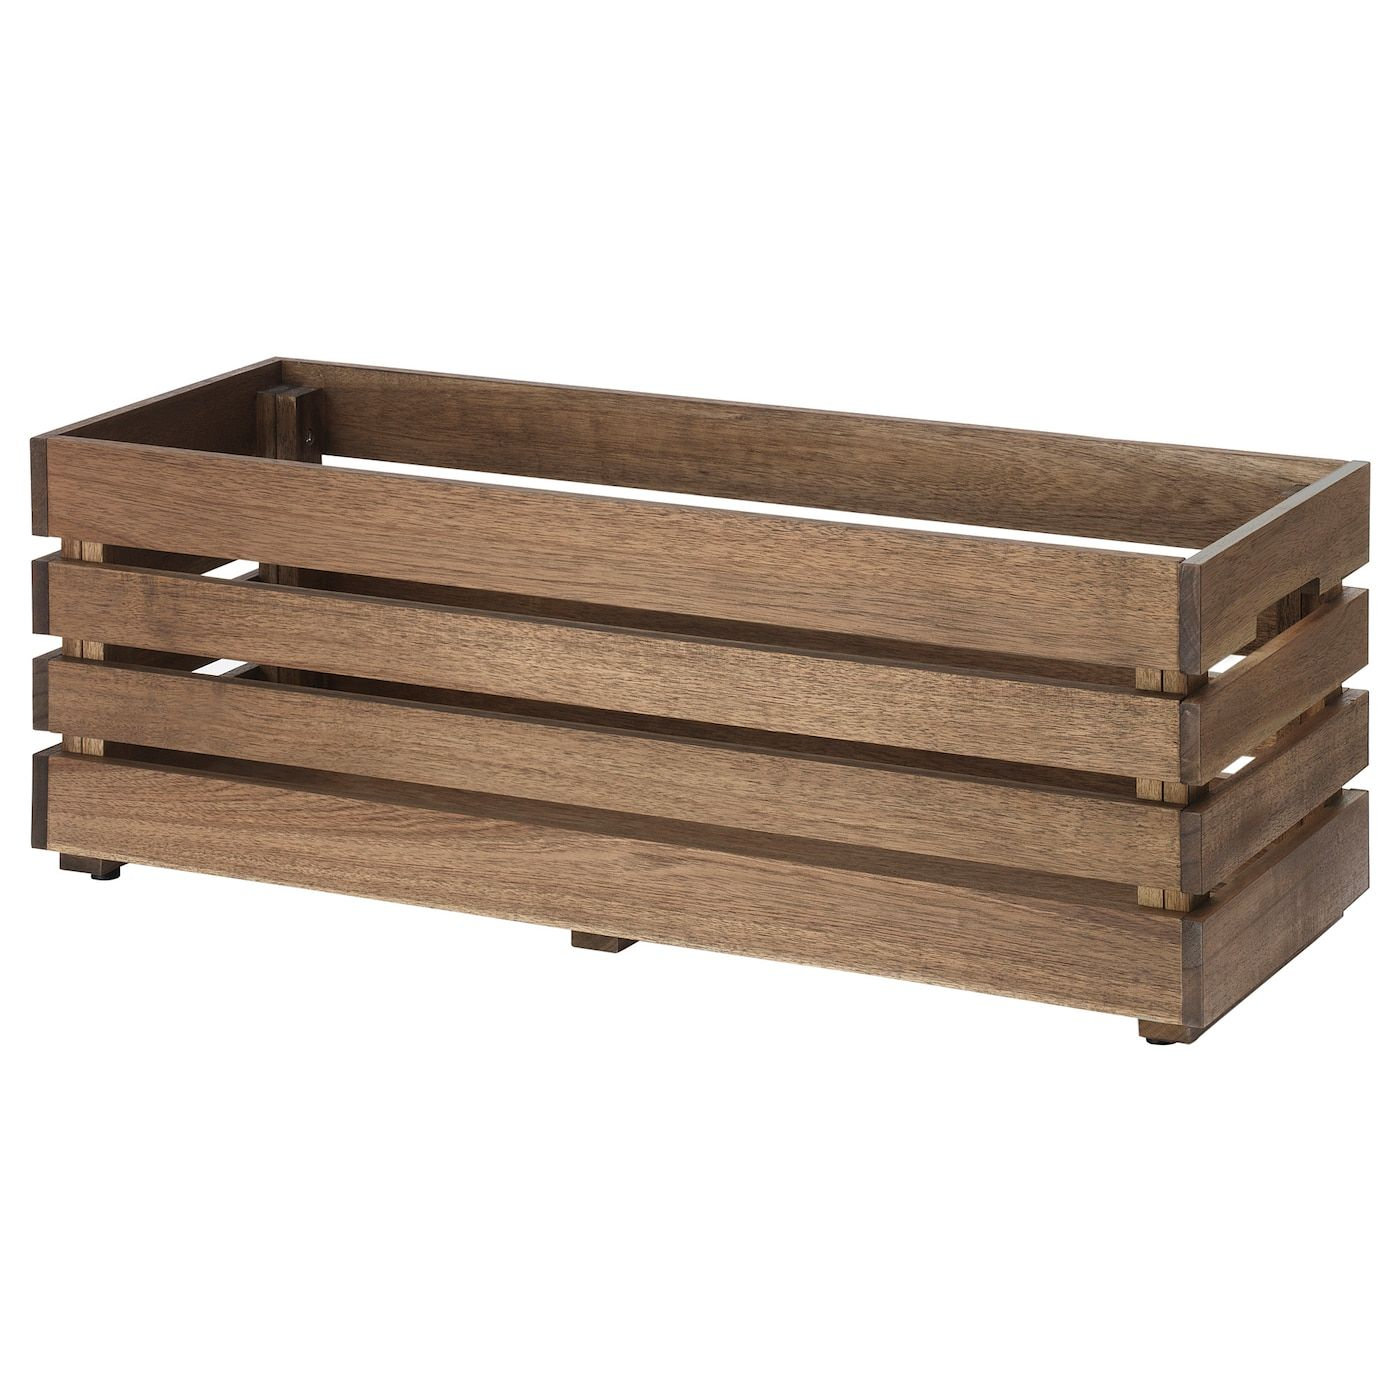 Ikea Stjarnanis Outdoor Acacia Flower Box In 2020 Flower Boxes